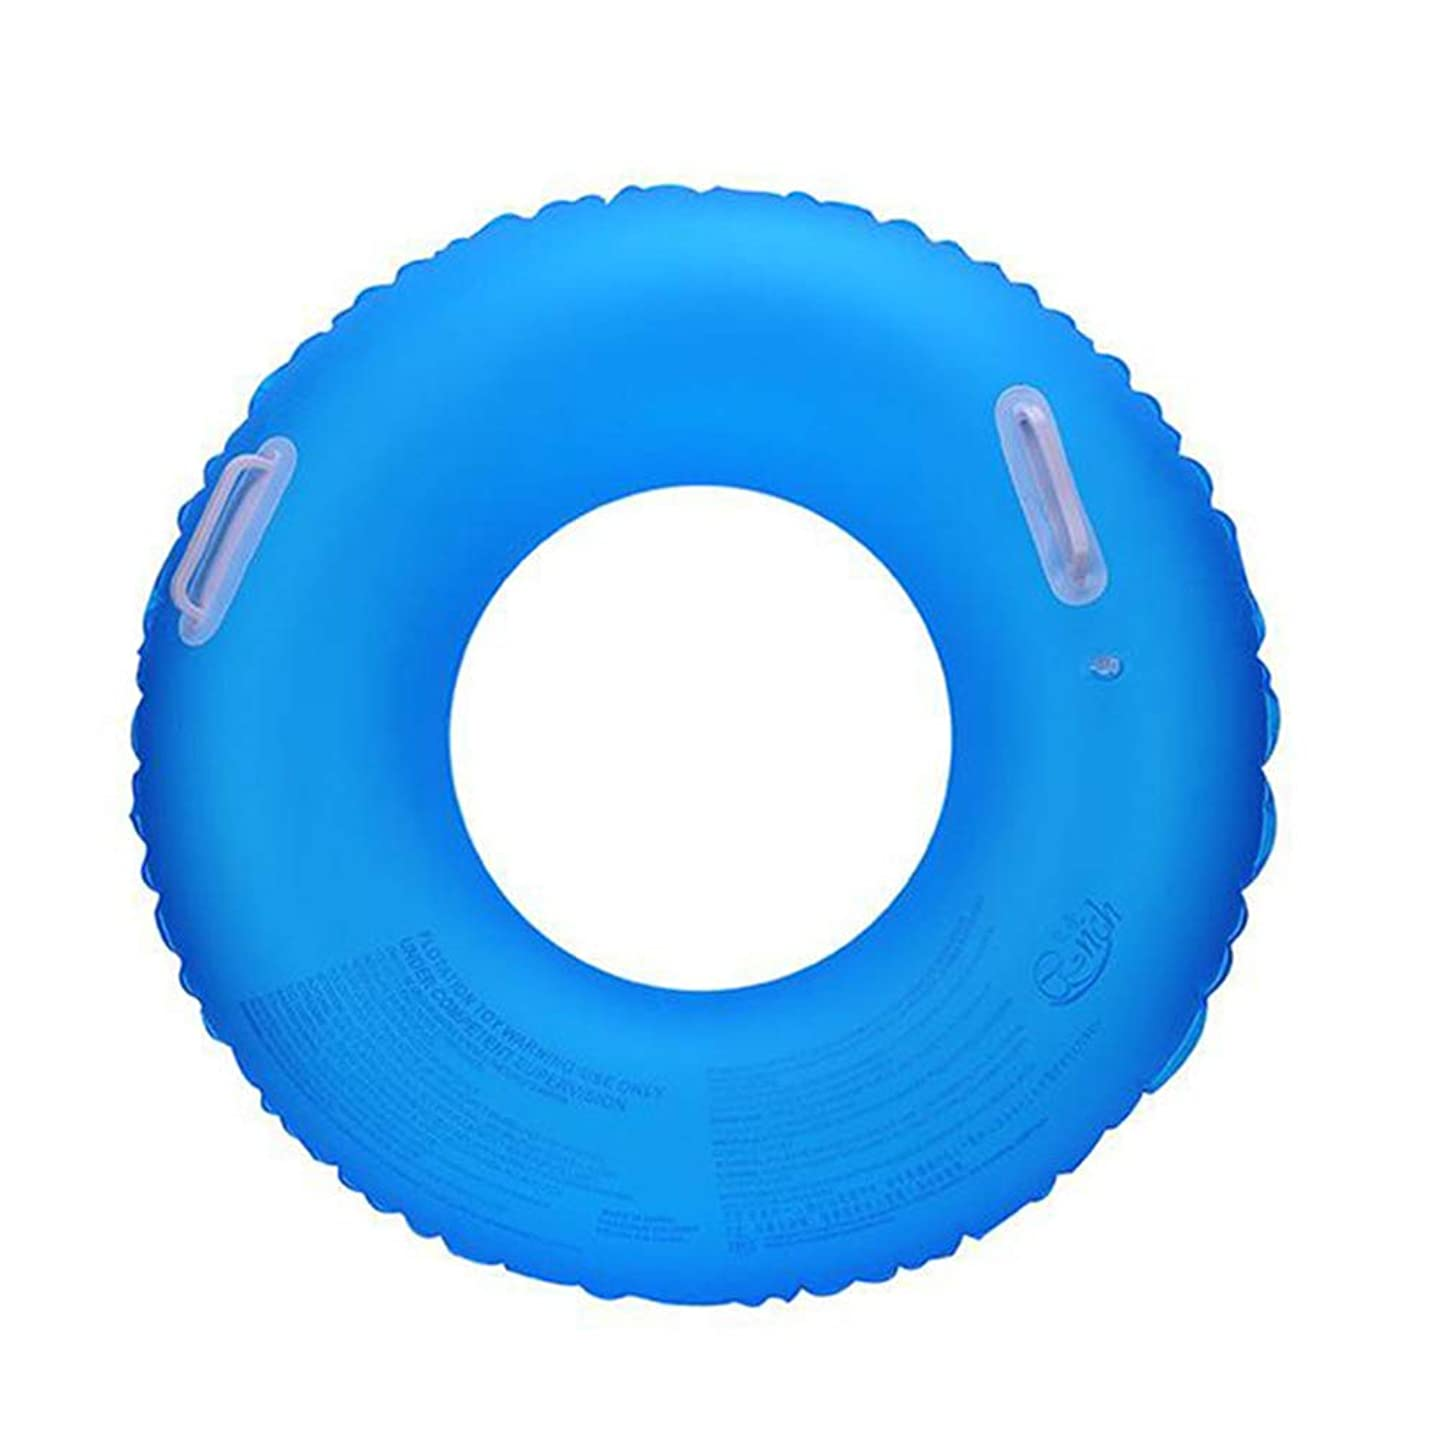 Qnlly Fluorescent Swimming Ring Thickening Men and Women Inflatable Lifebuoy